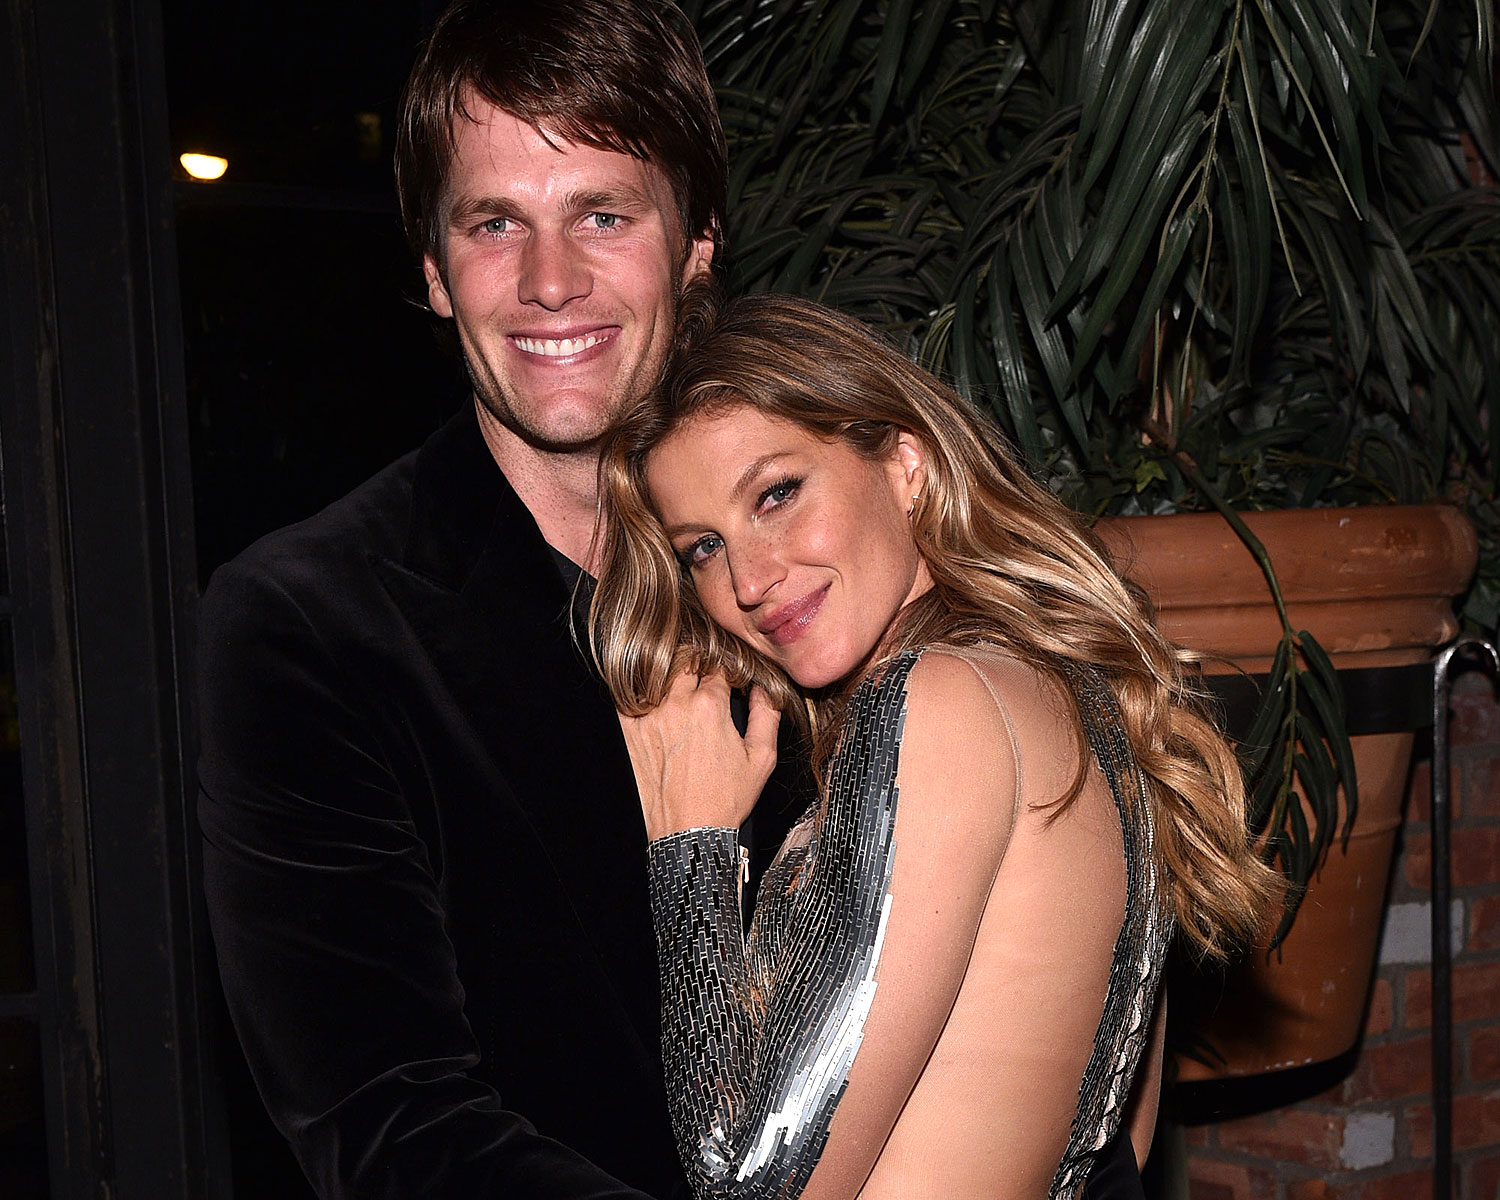 Tom Brady Shares Wedding Photo on Anniversary With Gisele